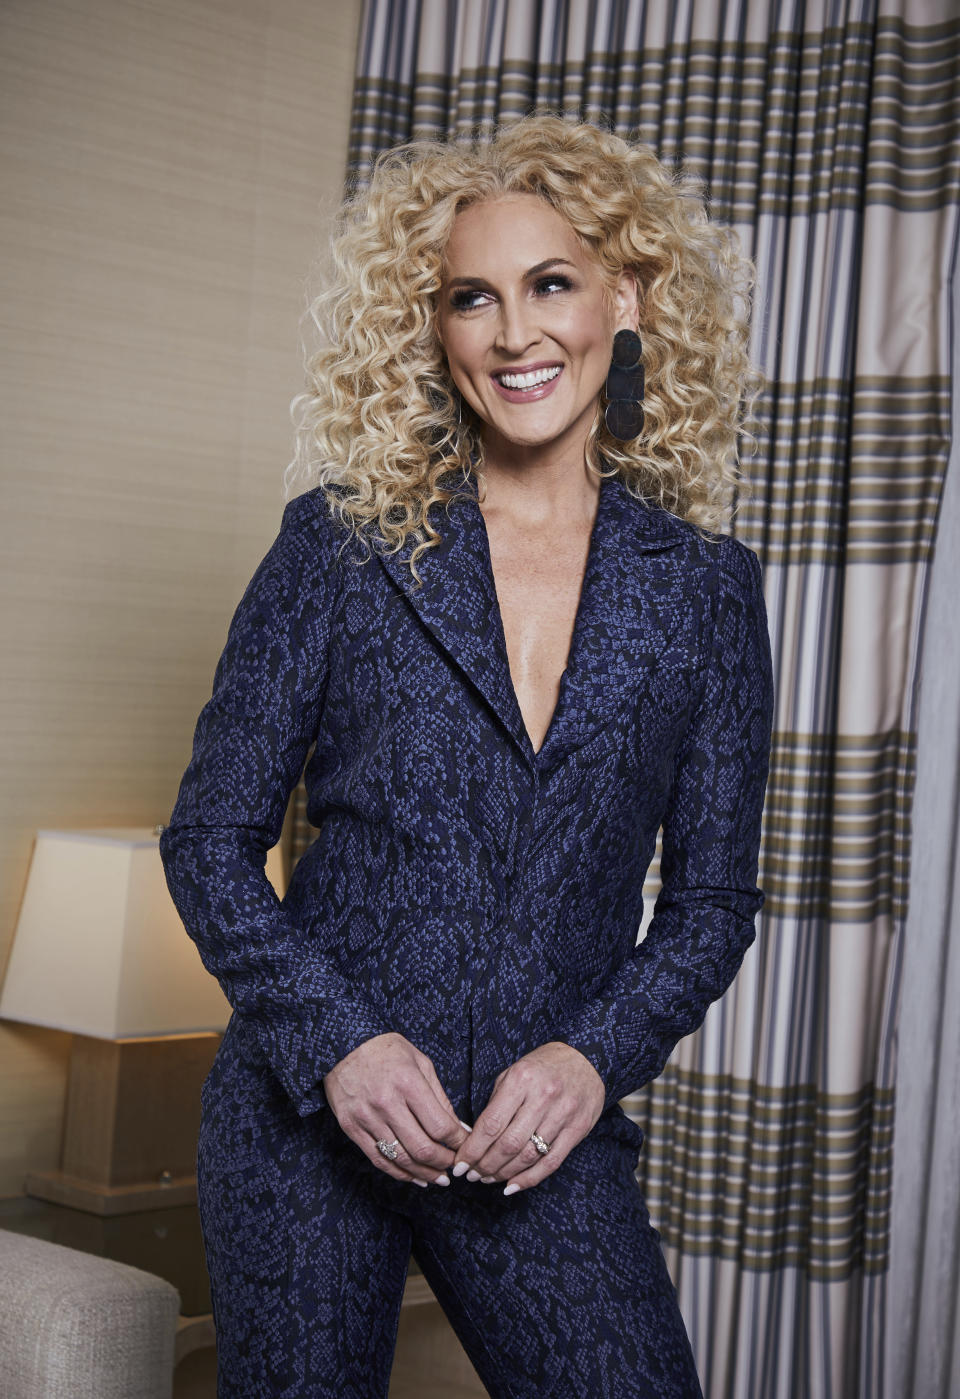 """FILE - This Jan. 13, 2020, photo shows Kimberly Schlapman, a member of the country group Little Big Town, posing for a portrait in New York to promote the band's new album """"Nightfall."""" Schlapman turns 52 on Oct. 15. (Photo by Matt Licari/Invision/AP, File)"""